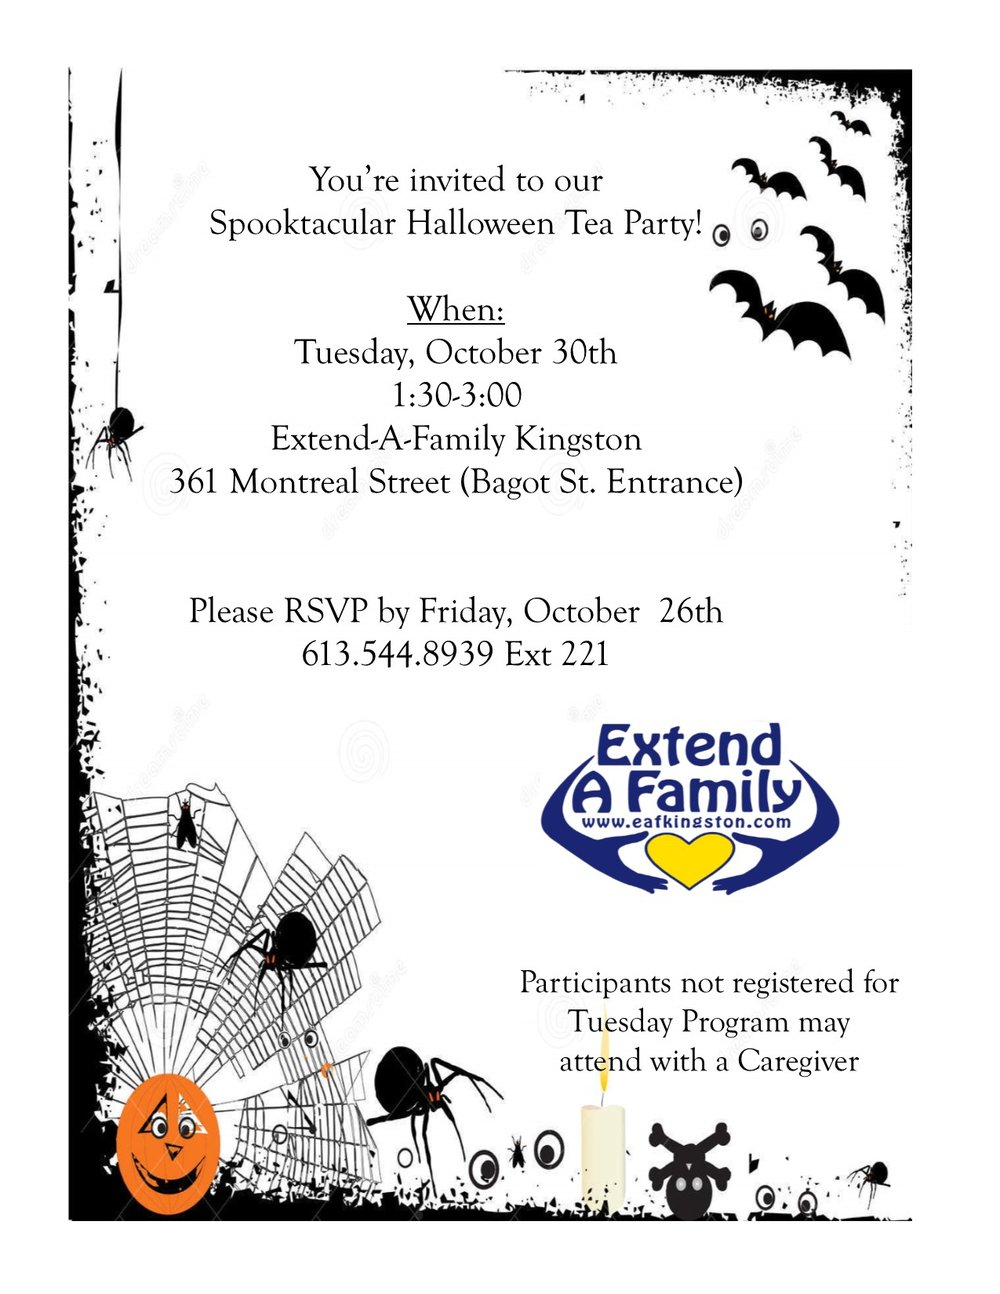 AP Halloween Tea Party Invite 09.21.2018.jpg